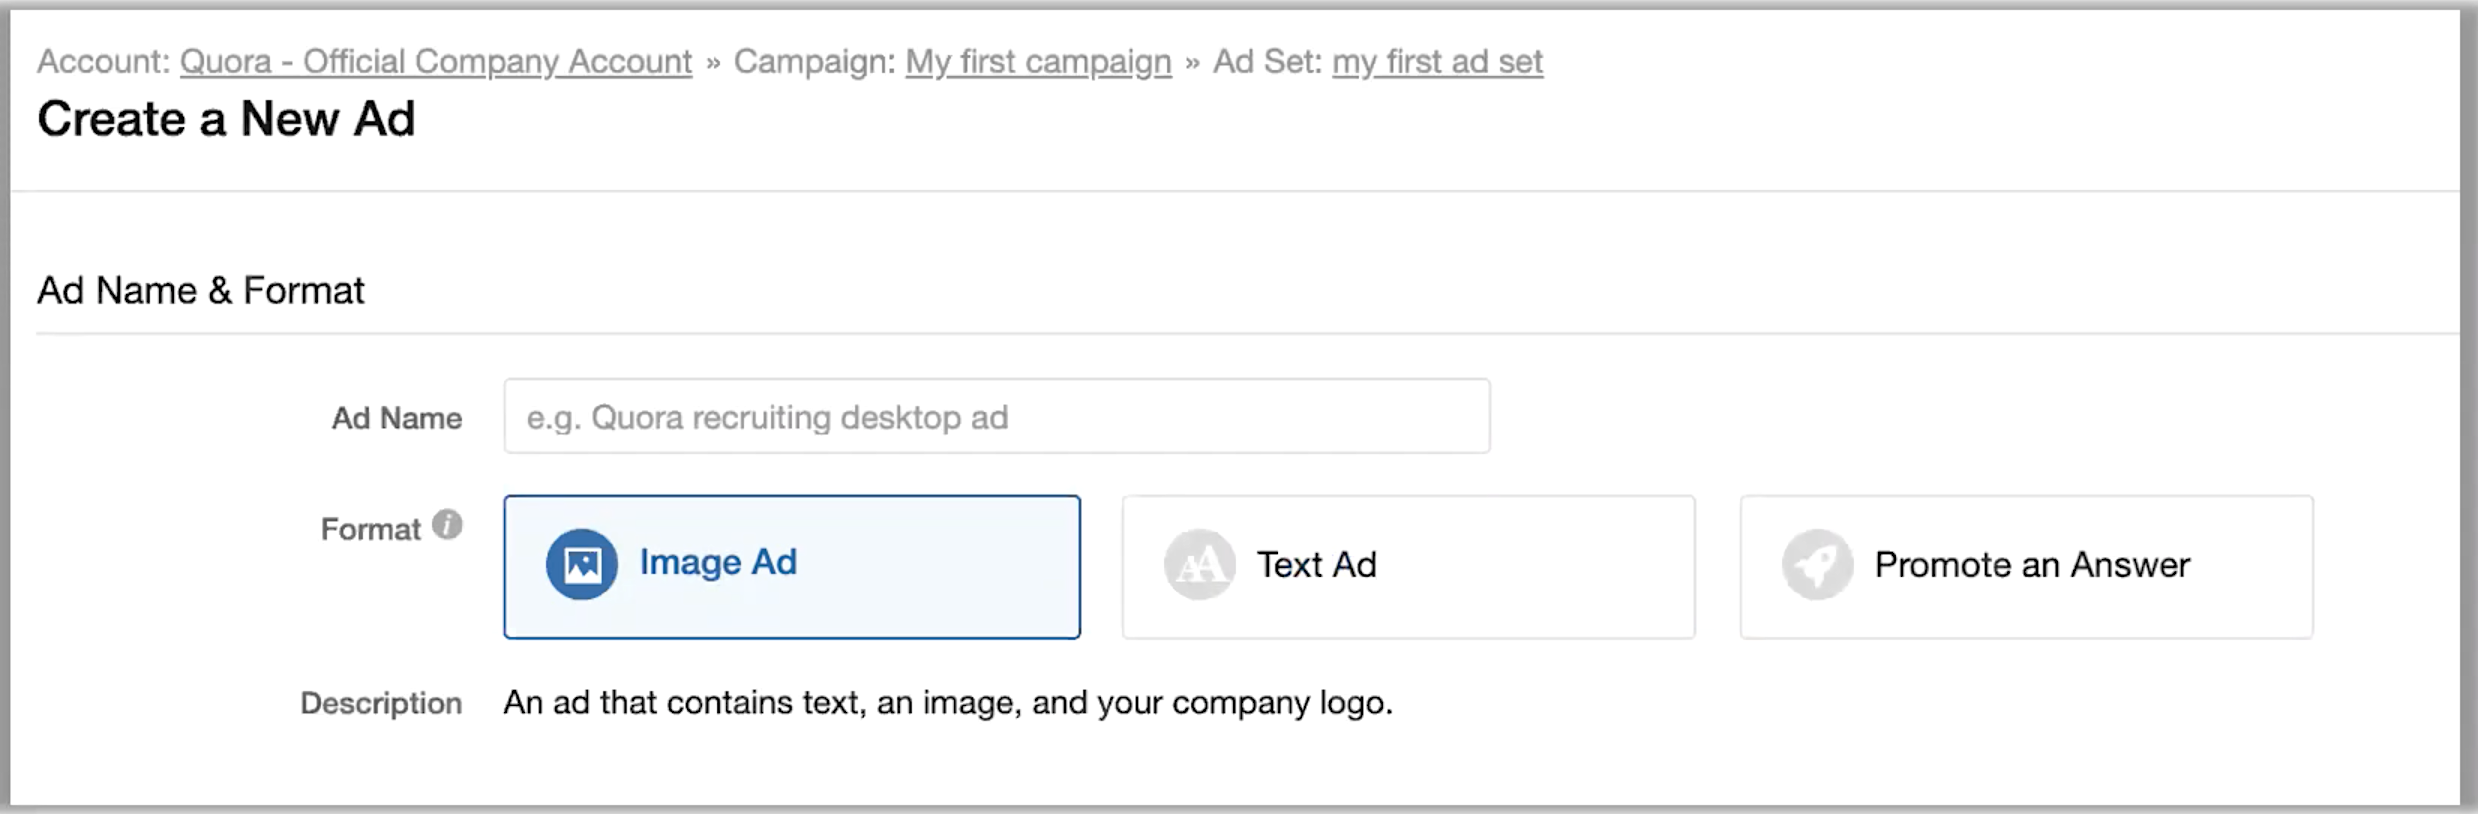 Weekly Wisdom with JD Prater: How to Set Up Your First Quora Ad Campaign. Image 13